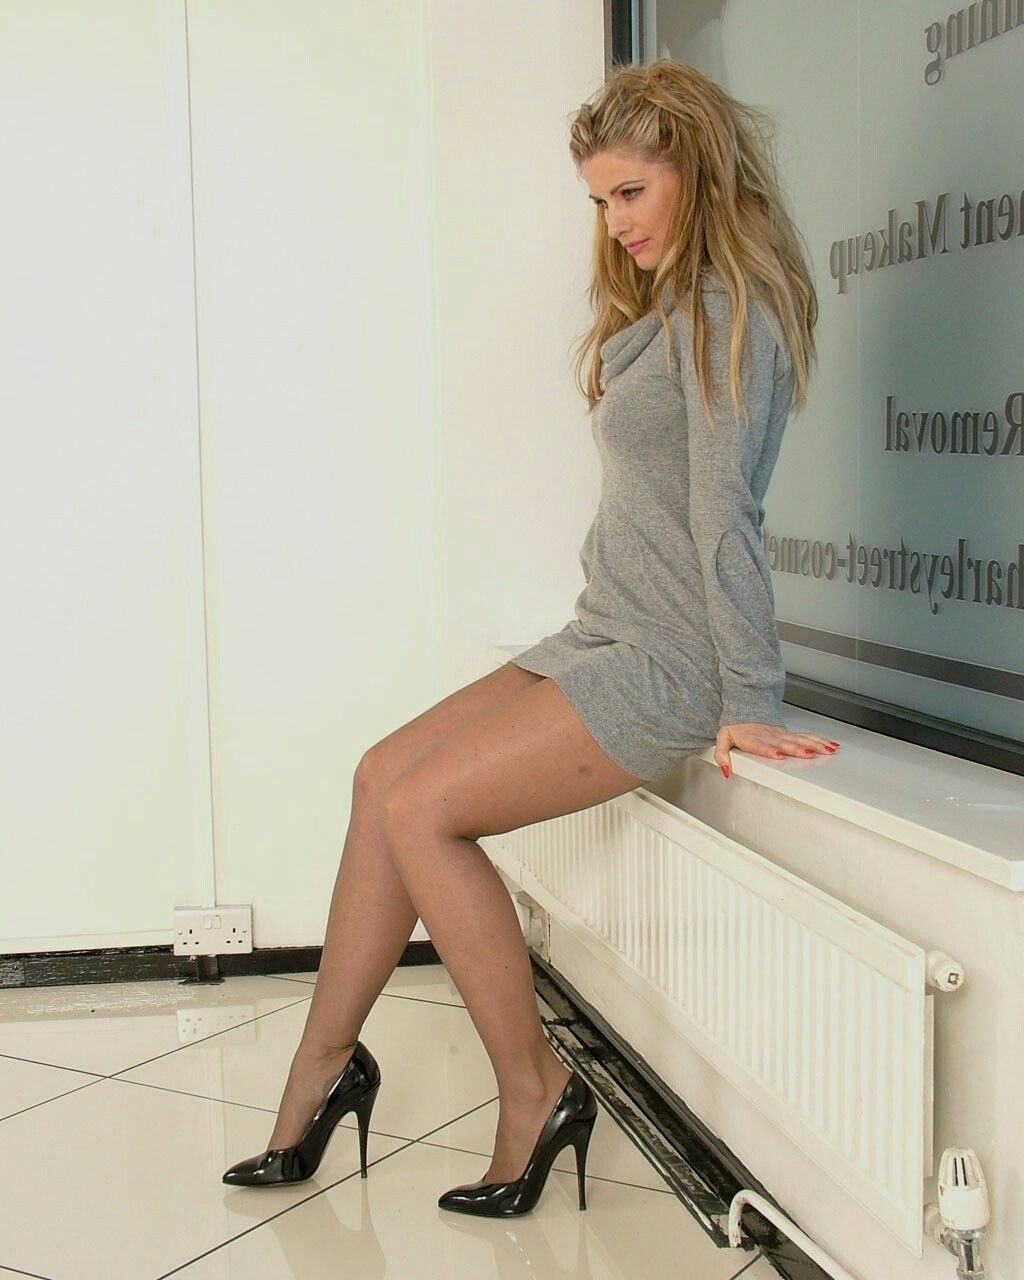 Stiletto girls legs